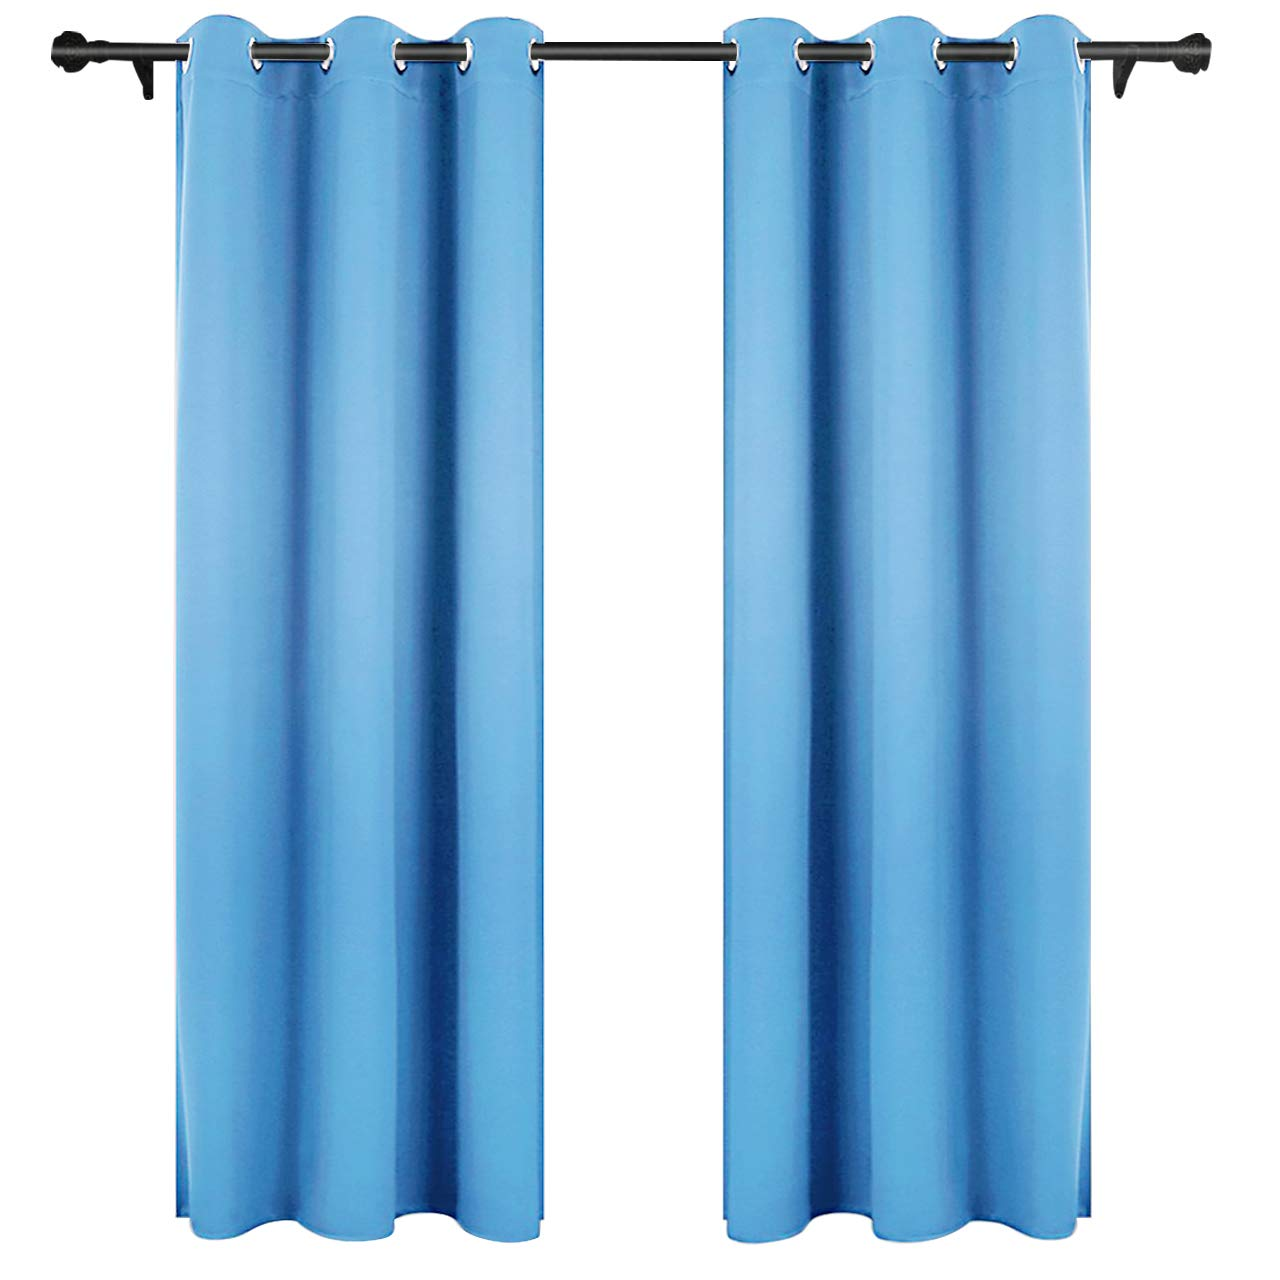 LIVINGbasics Solid Thermal Insulated Blackout Curtains for Bedroom/Living Room - 8 Grommets/Rings per Panel Room Darkening Window Curtains, Light Blue, 1 Panel (52x63 inch)